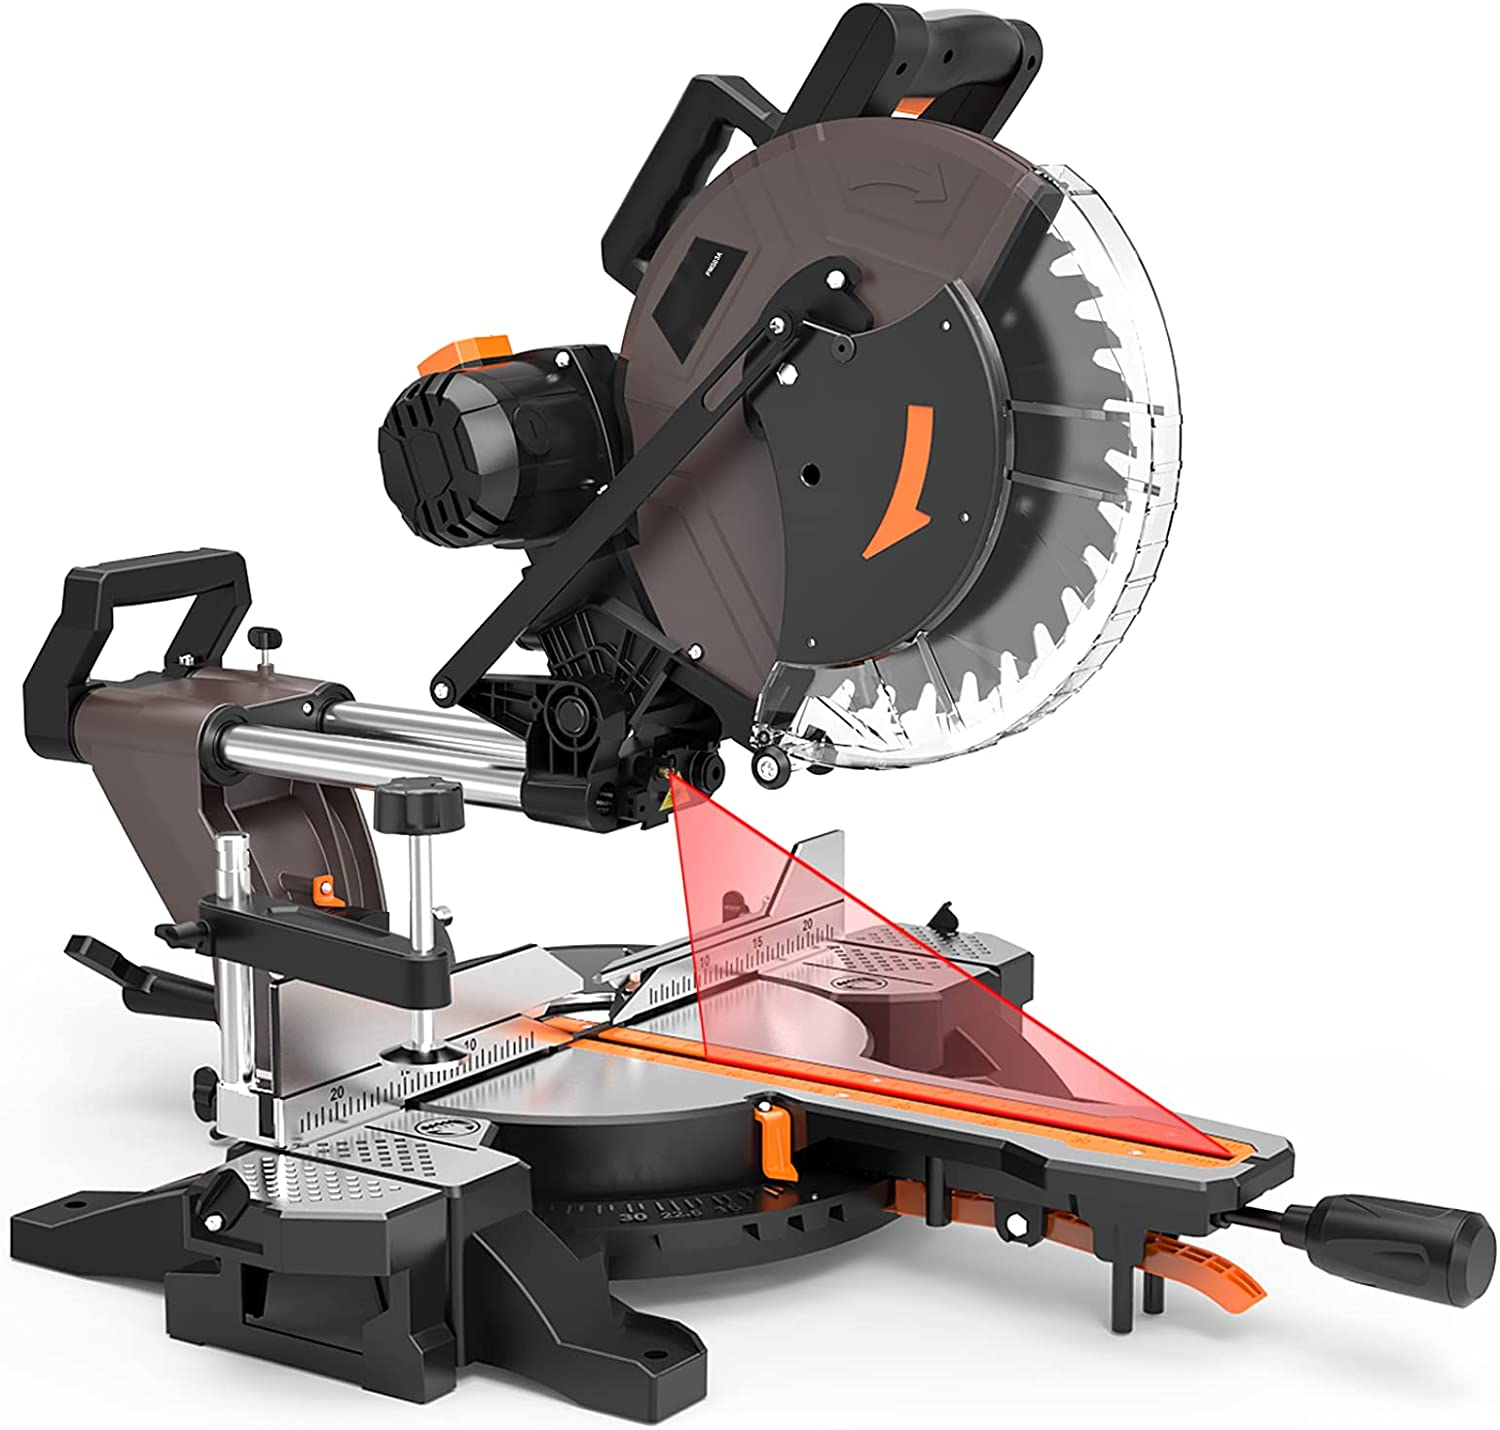 DSF 15A 12-inch  Double-Bevel Sliding Compound Miter Saw $149.99 Coupon